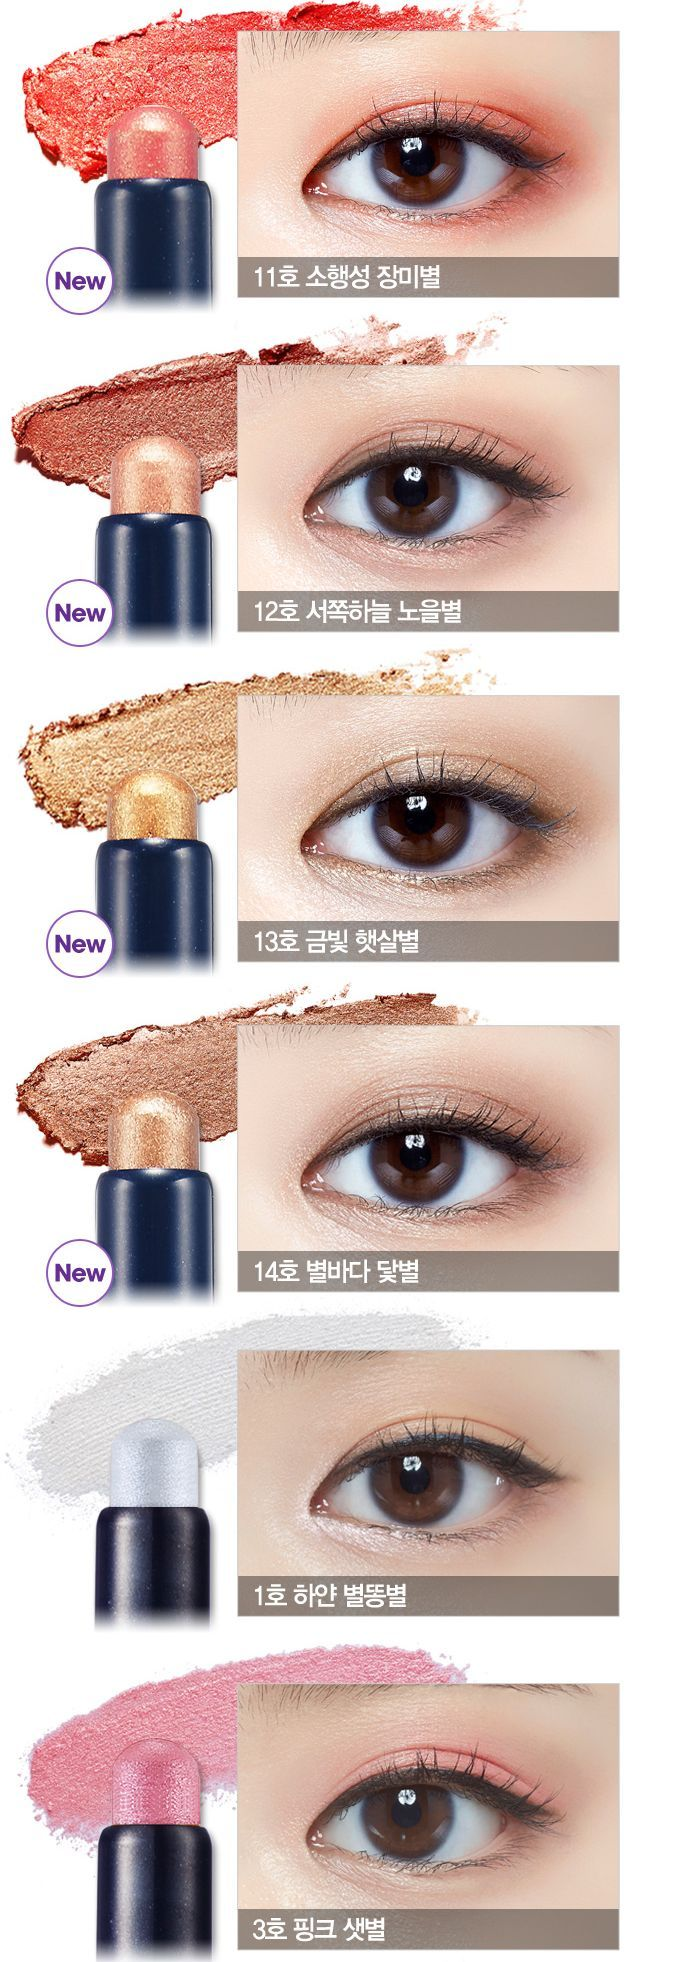 Etude House Bling Bling Eye Stick Eyeshadow